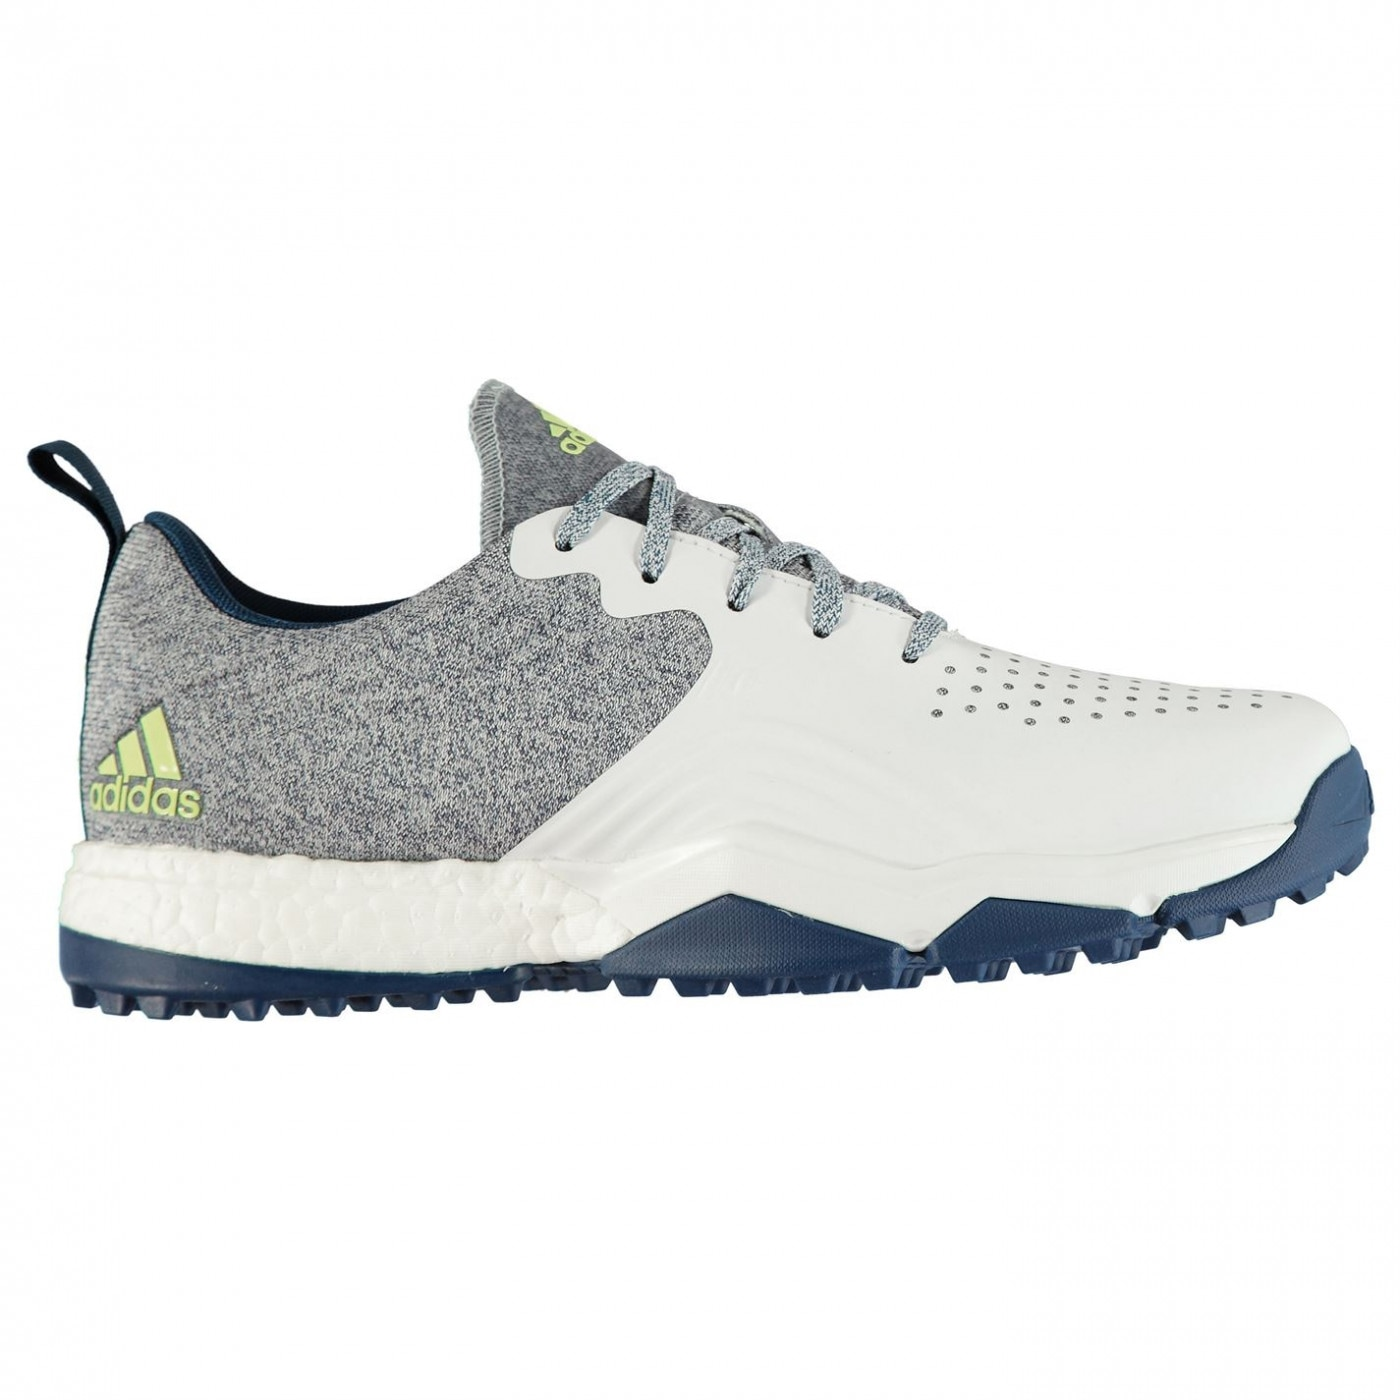 Adidas adipower 4orged BOOST Mens Golf Shoes